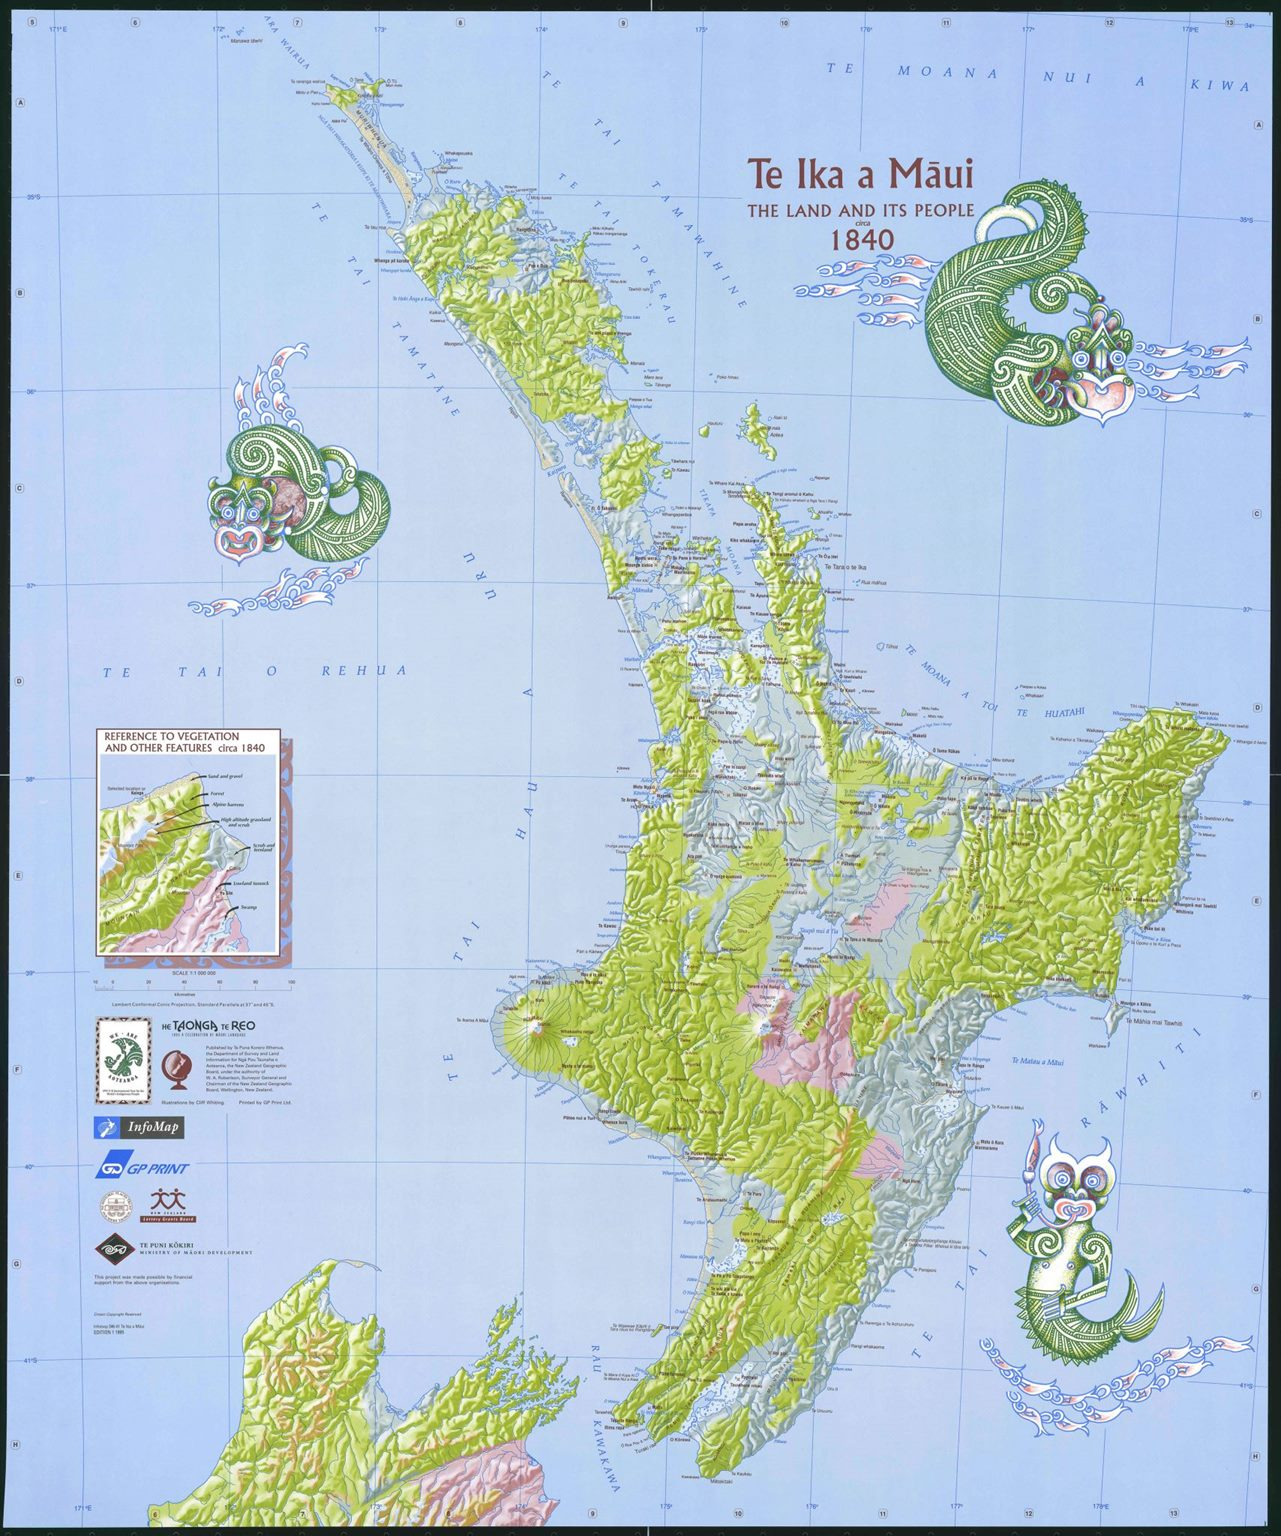 graphic relating to Printable Maps of Maui identify Te Ika a Maui Map - North Island Map